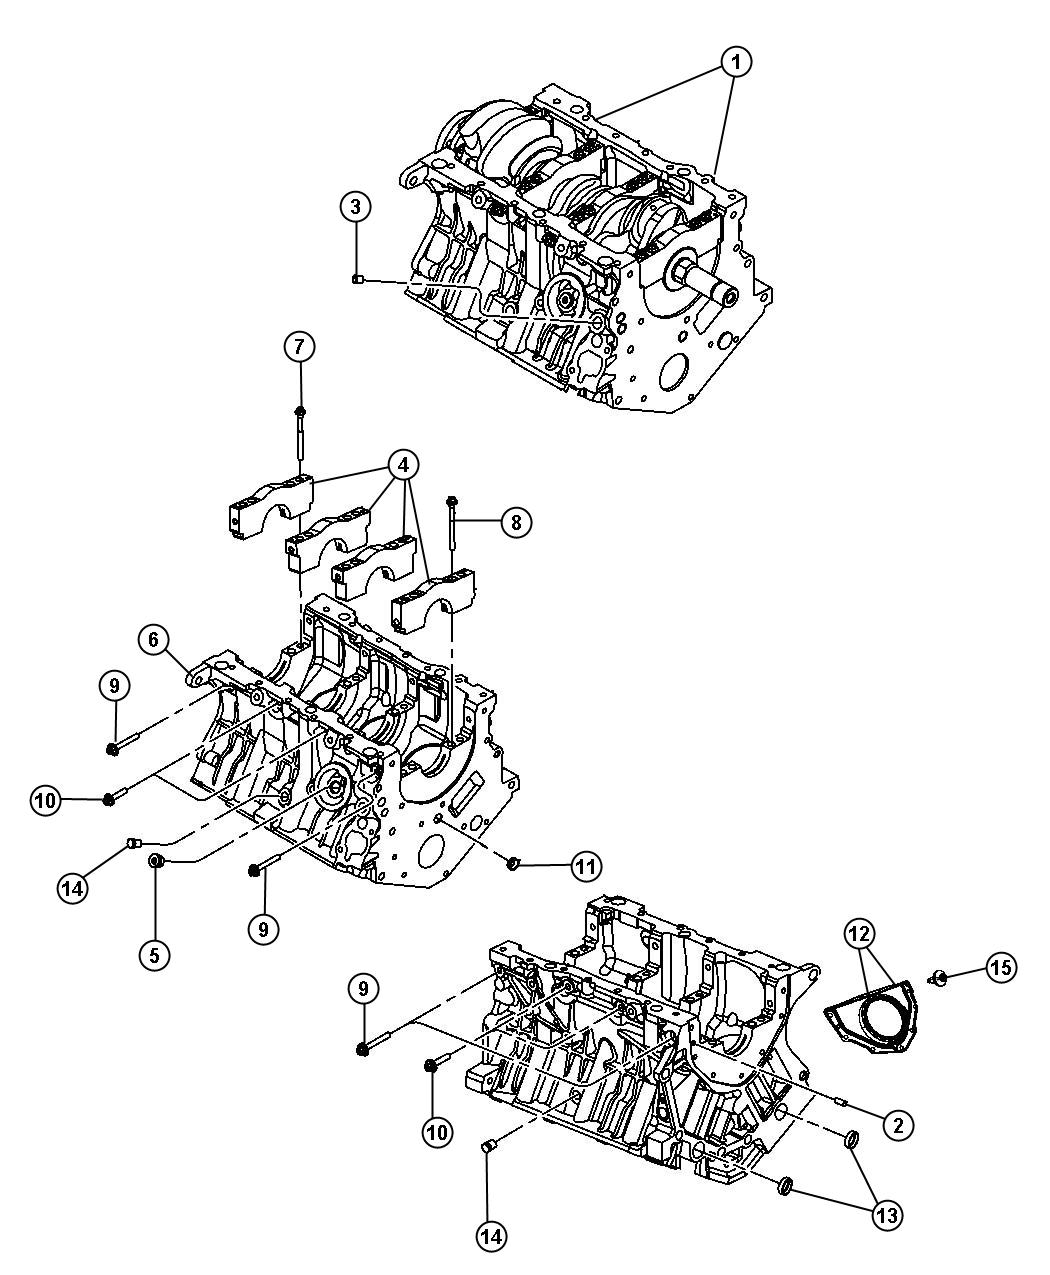 2008 Dodge Nitro Engine  Long Block  Remanufactured  Group  Tow  Trailer